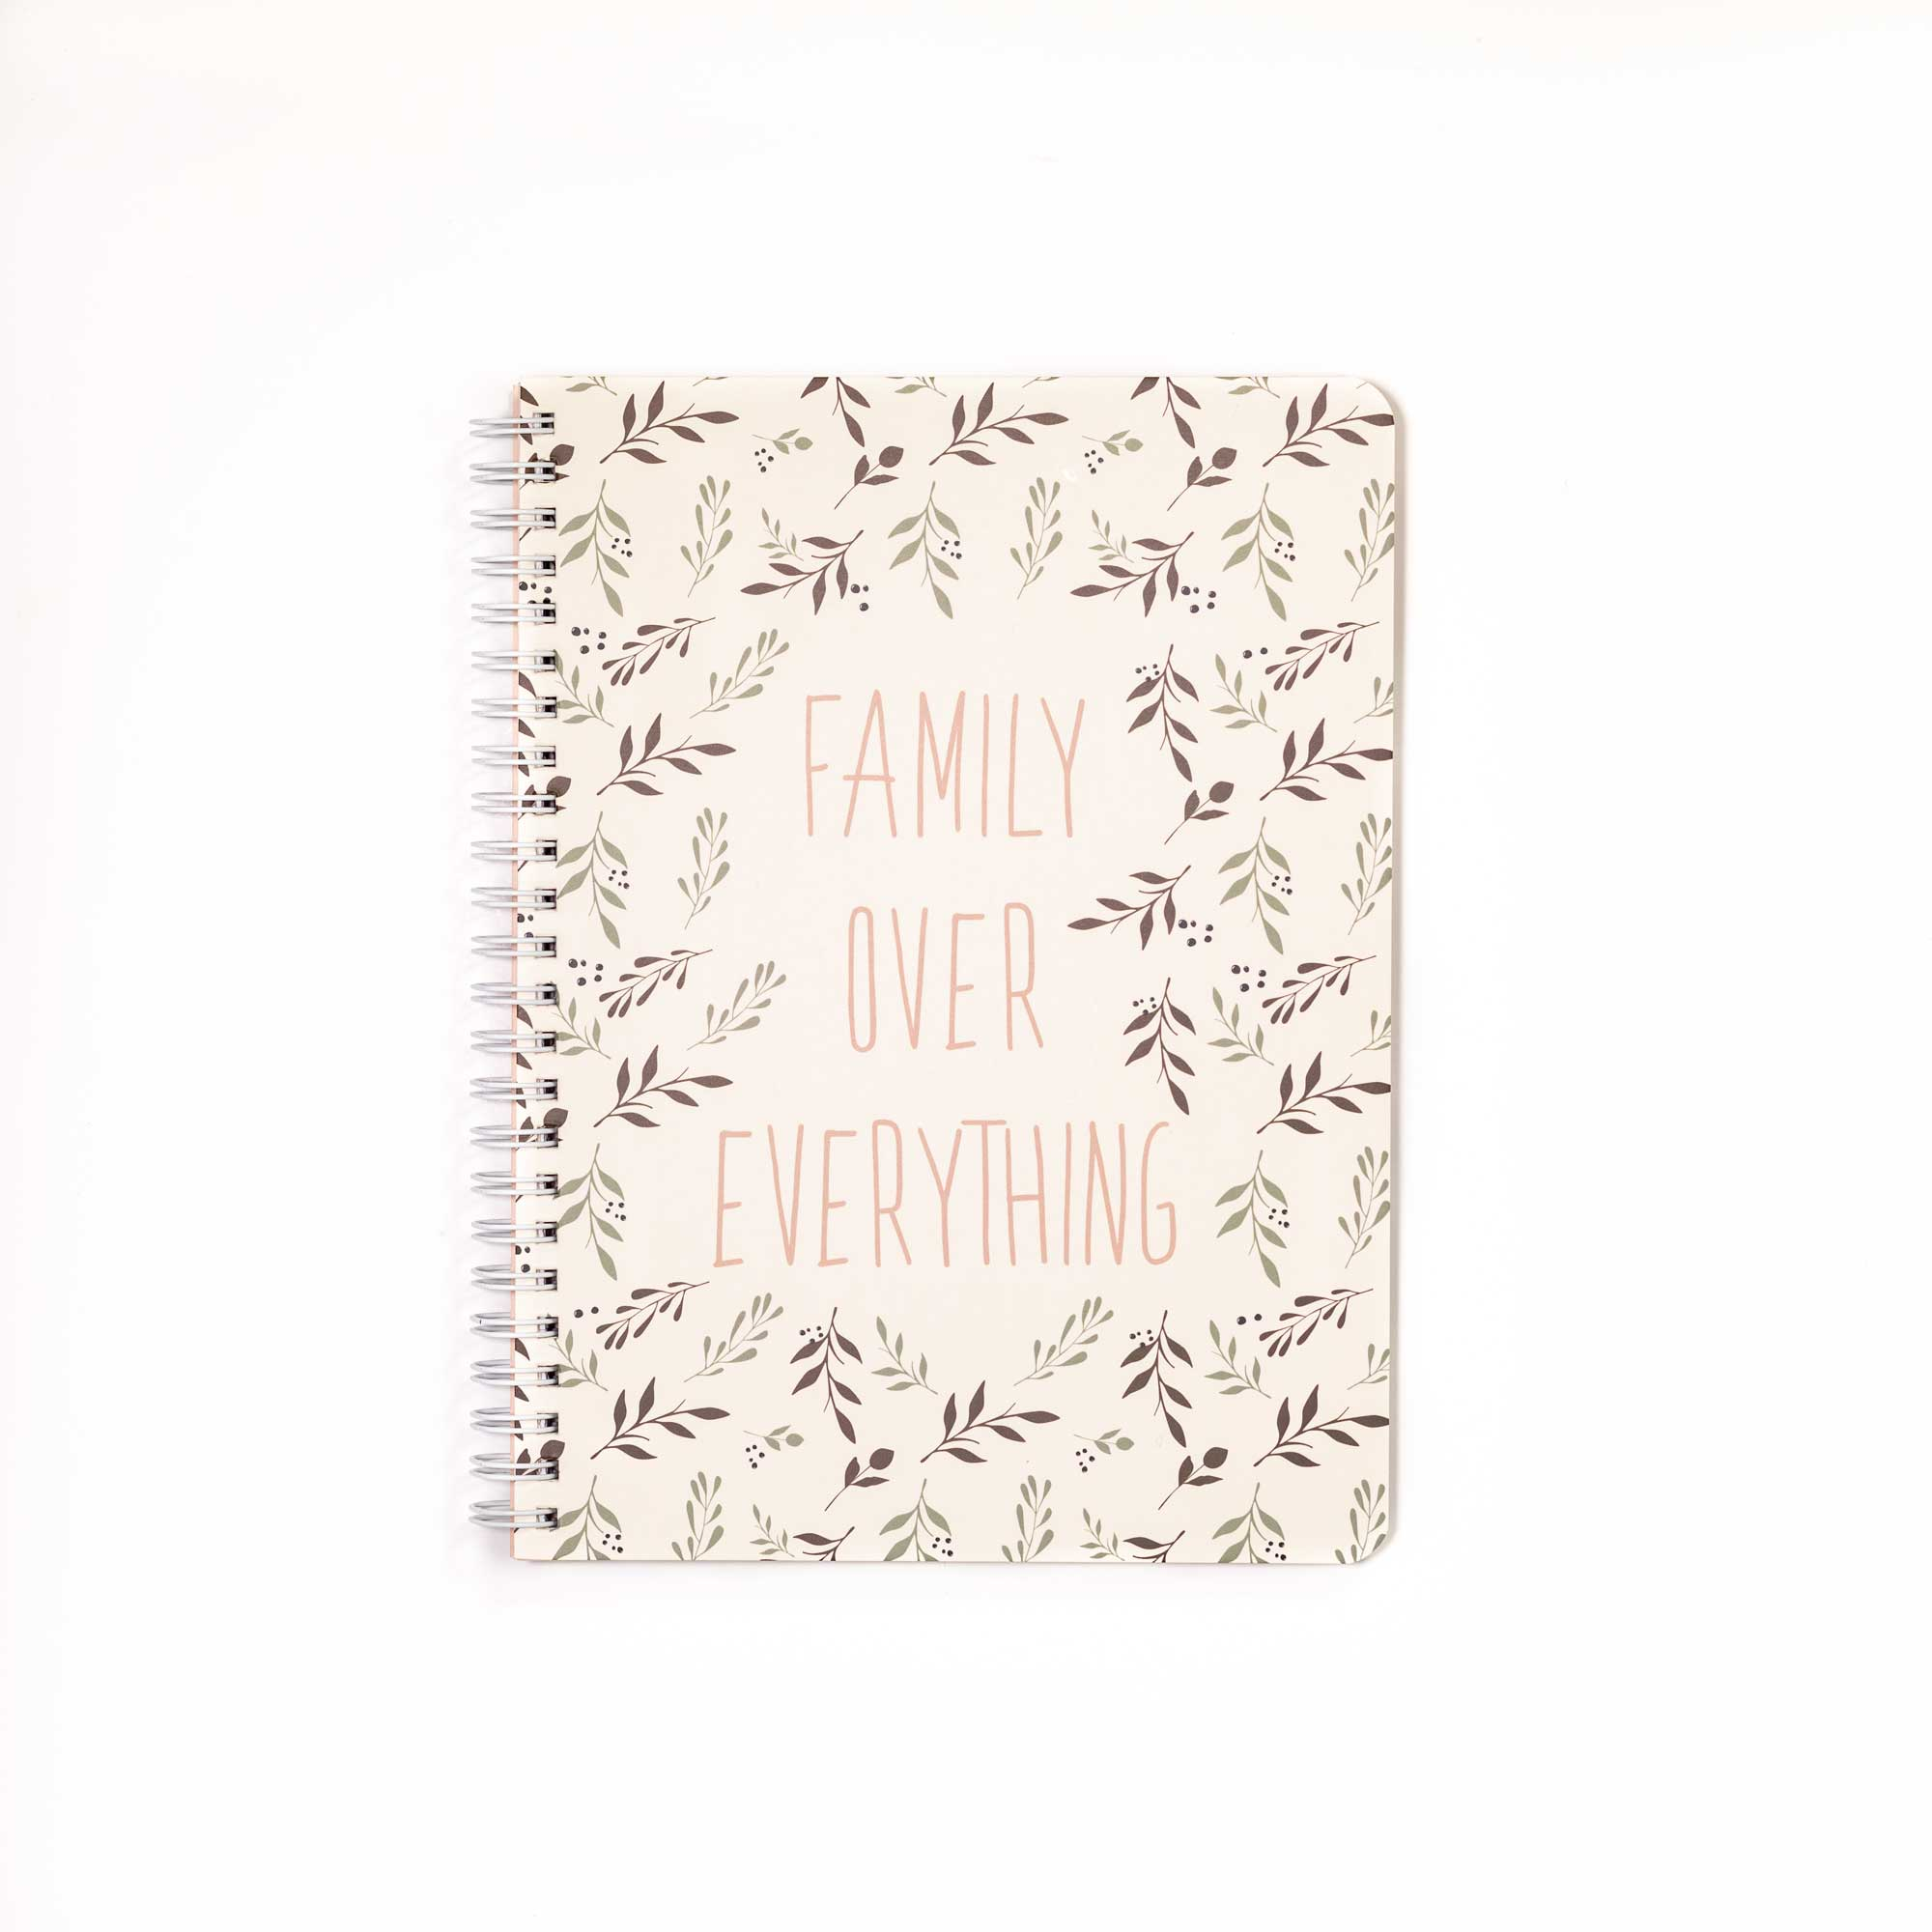 Mini Notebook & Pen Set, Family Over Everything